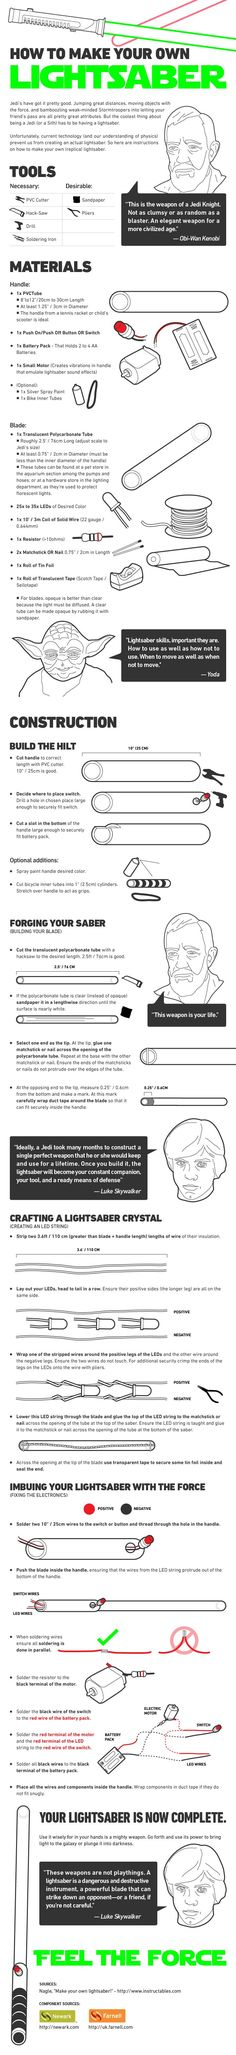 How to make a light saber. I do not have the skill for this.